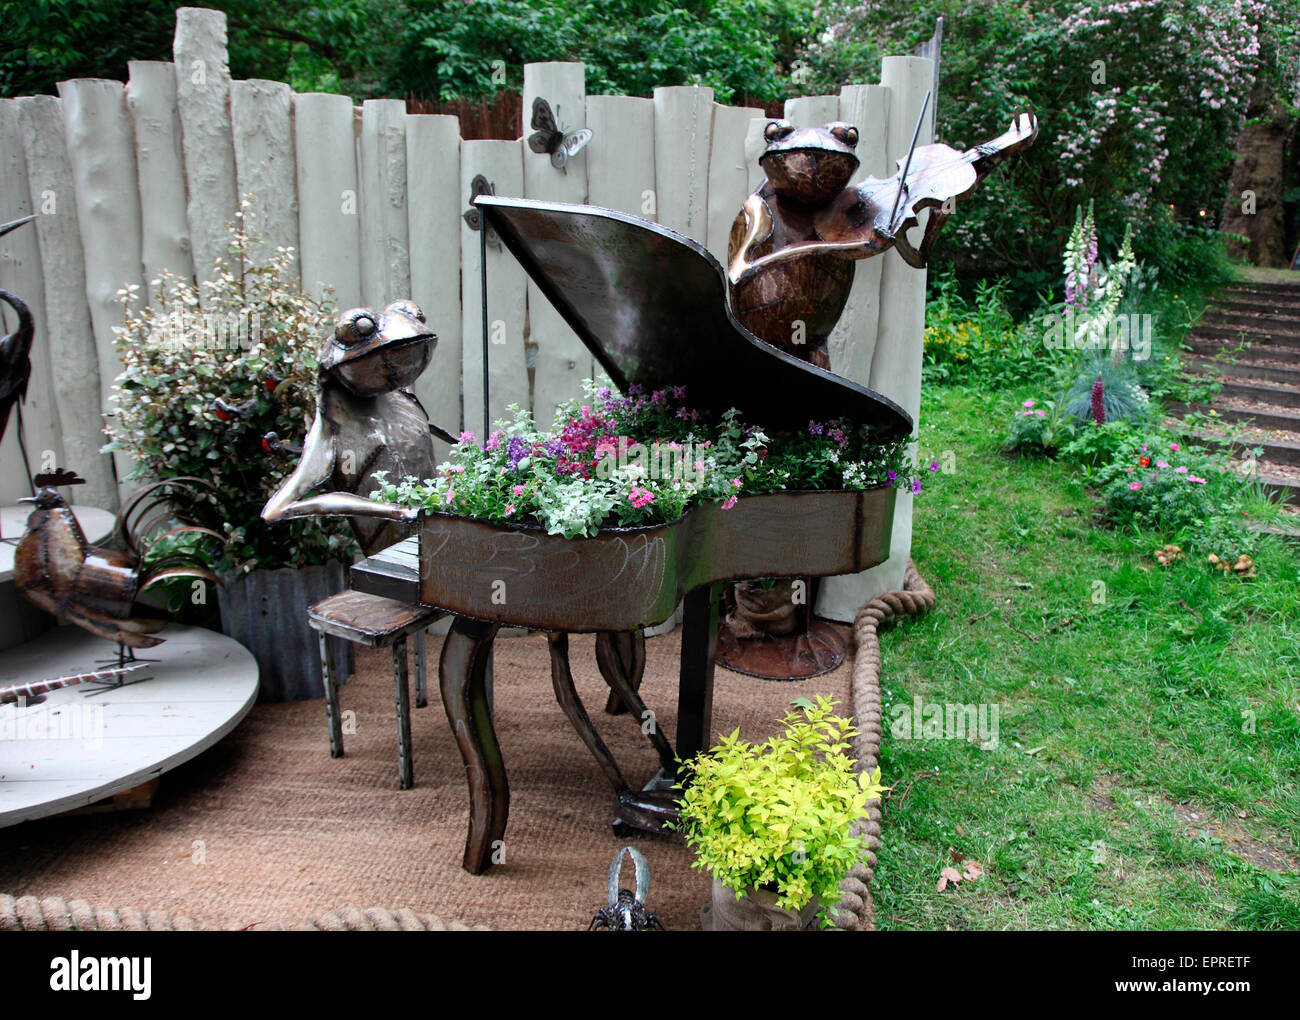 Frog duet by Zimbolic recycled metal - Stock Image